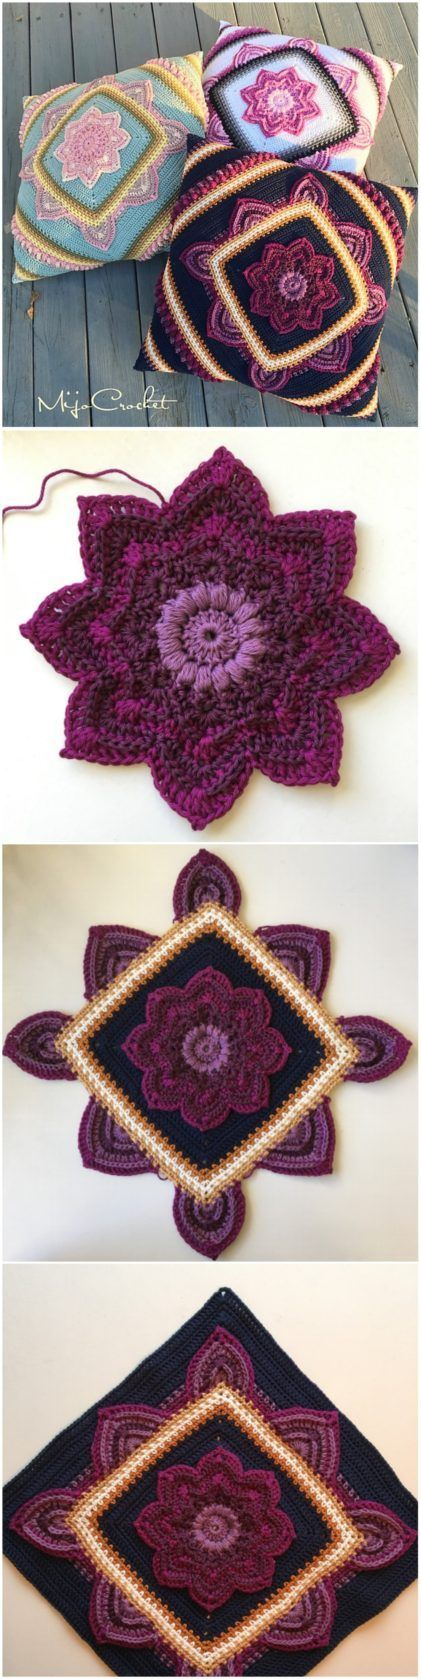 Crochet Blooming Flower Square - Free Pattern